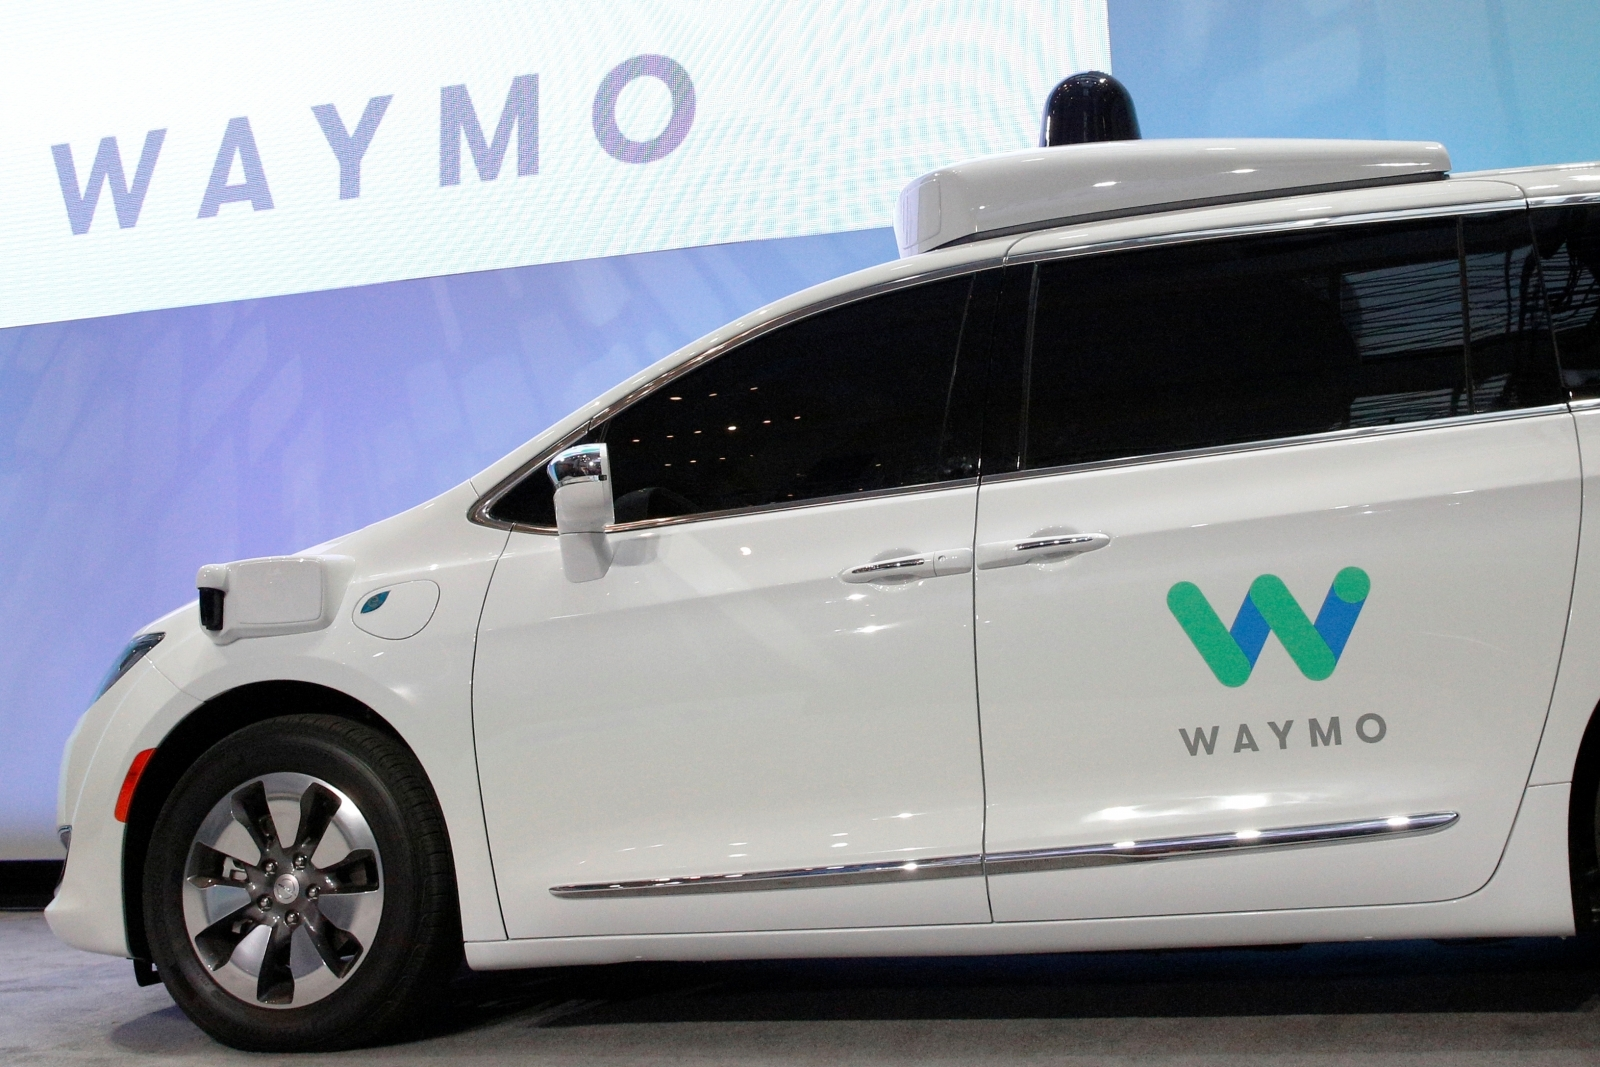 Waymo trade secrets